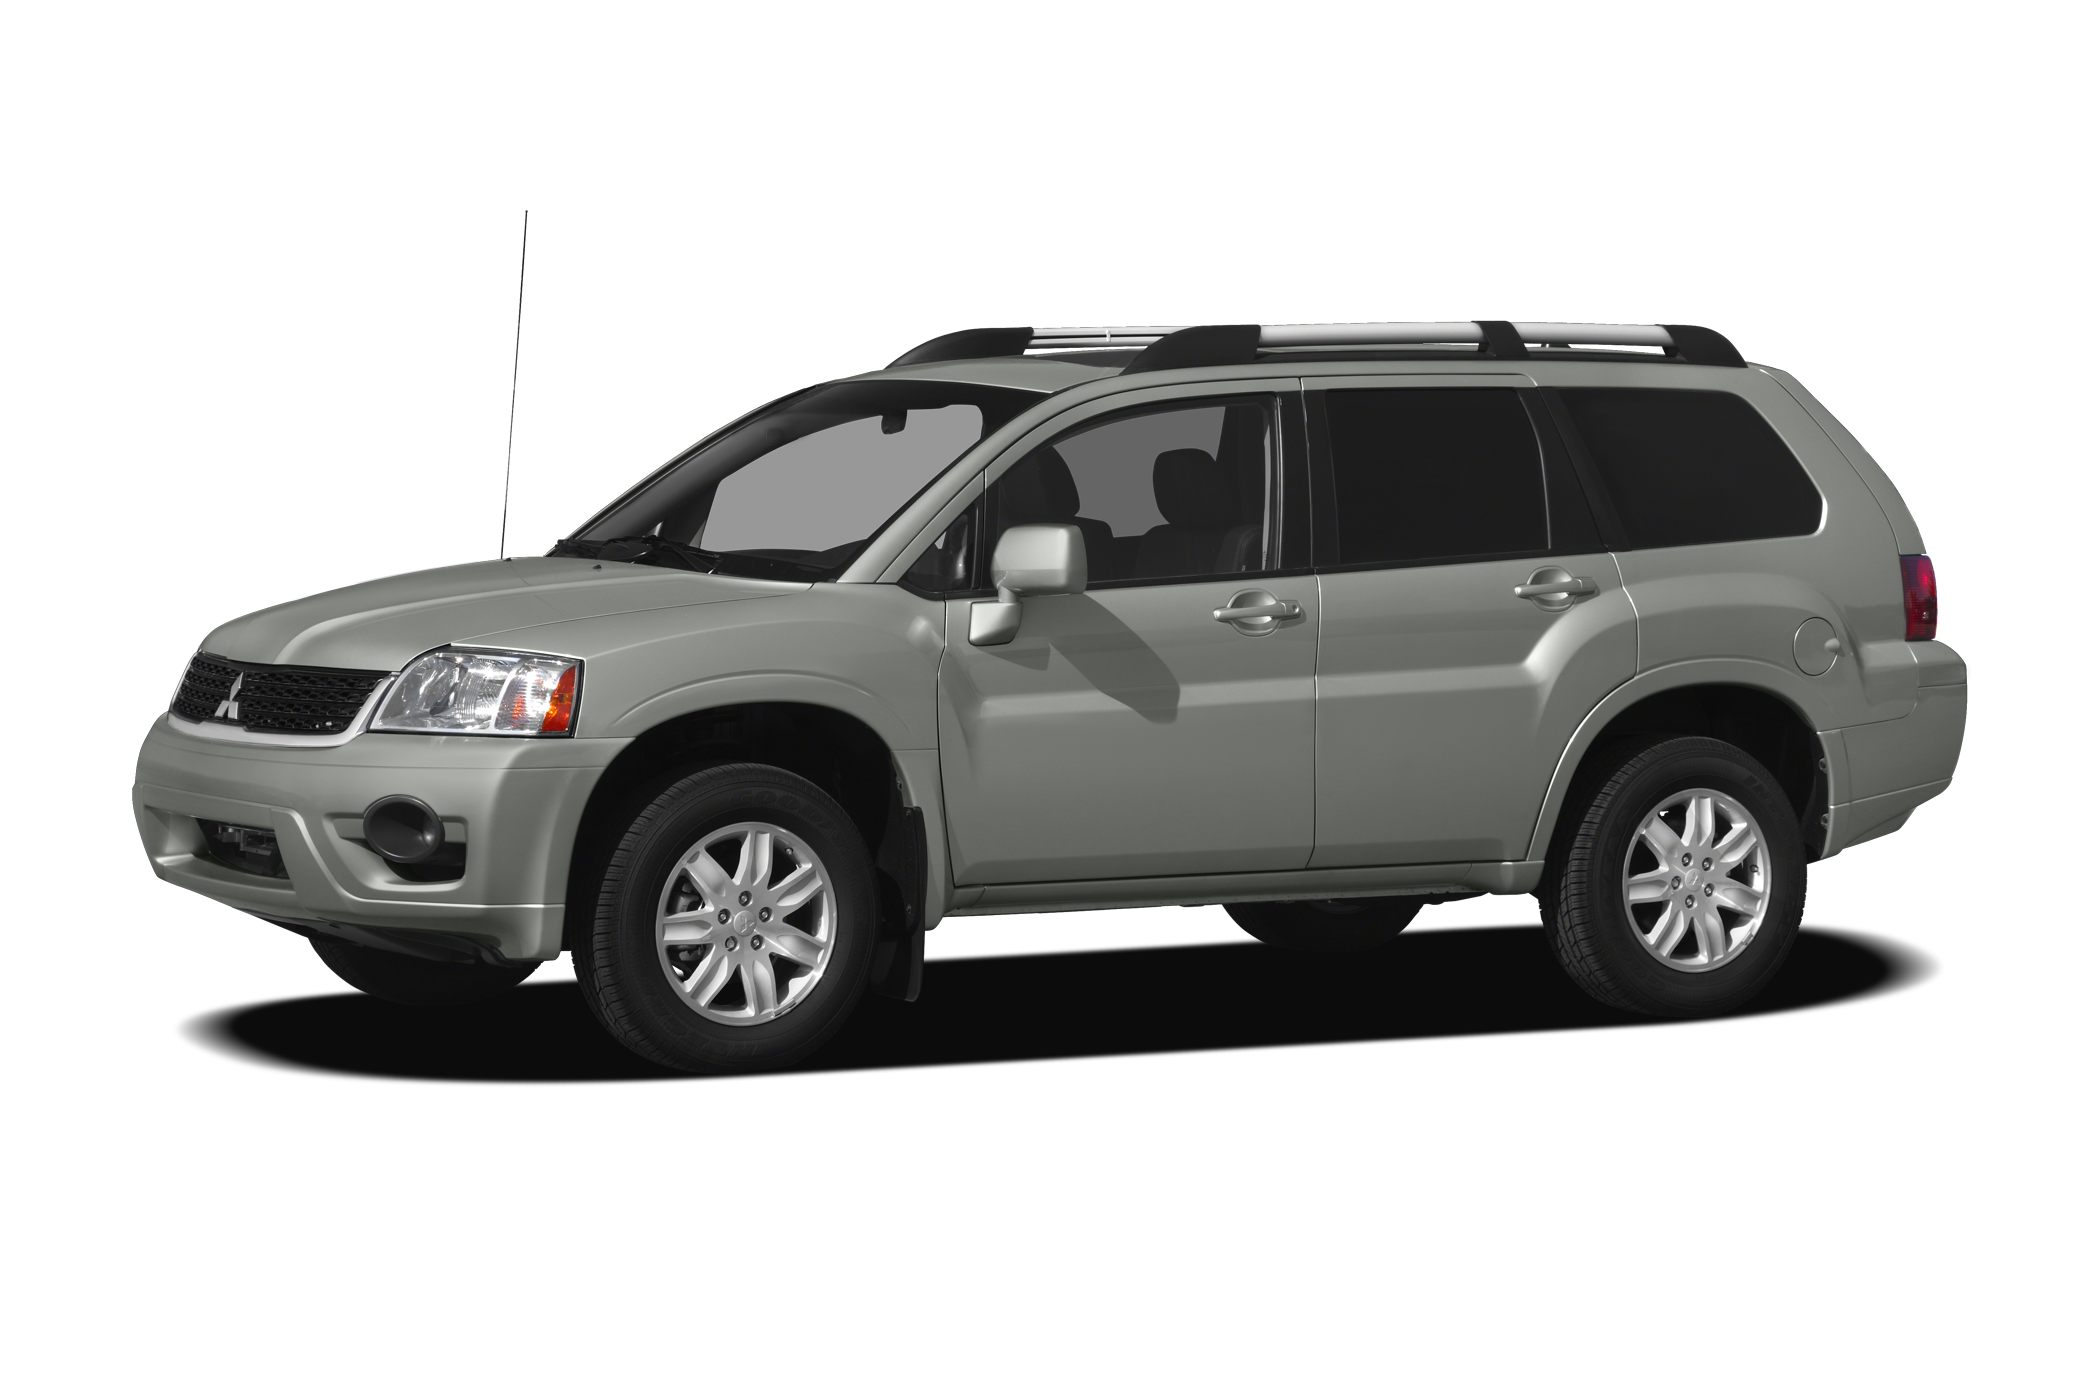 2010 Mitsubishi Endeavor SE SUV for sale in Cleveland for $12,970 with 62,925 miles.